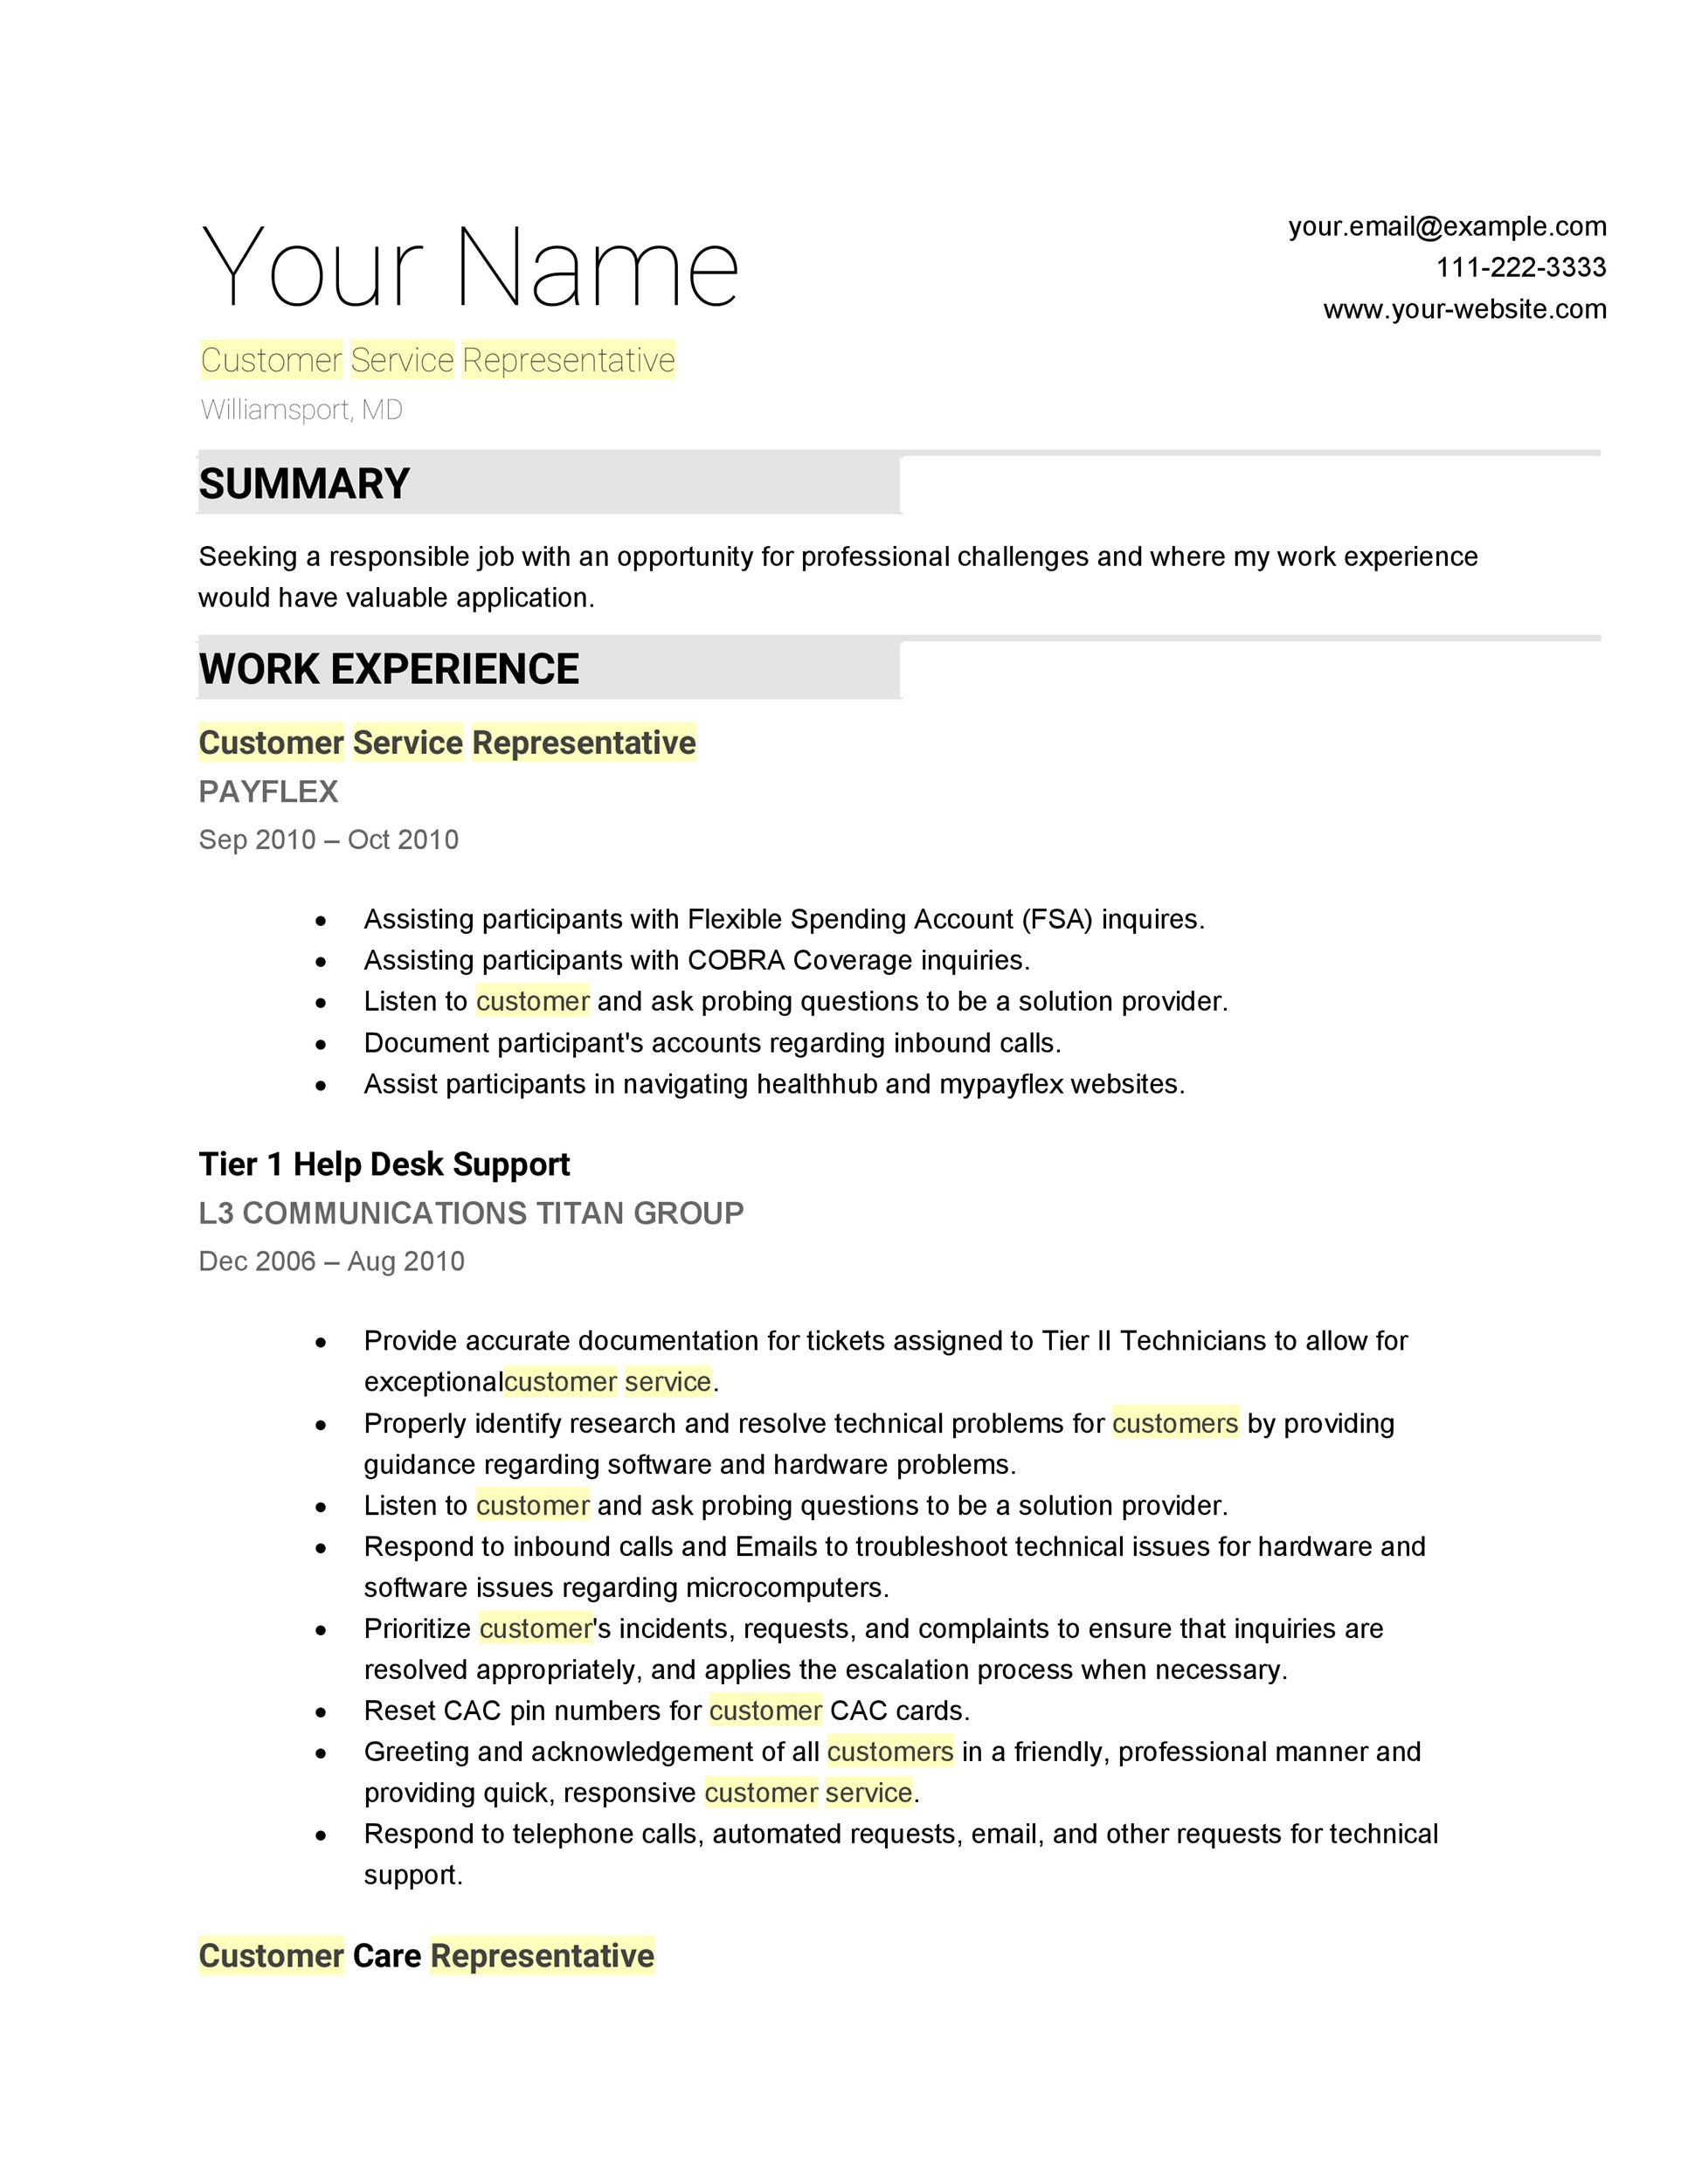 30+ Customer Service Resume Examples - Template Lab - resume templates with photo